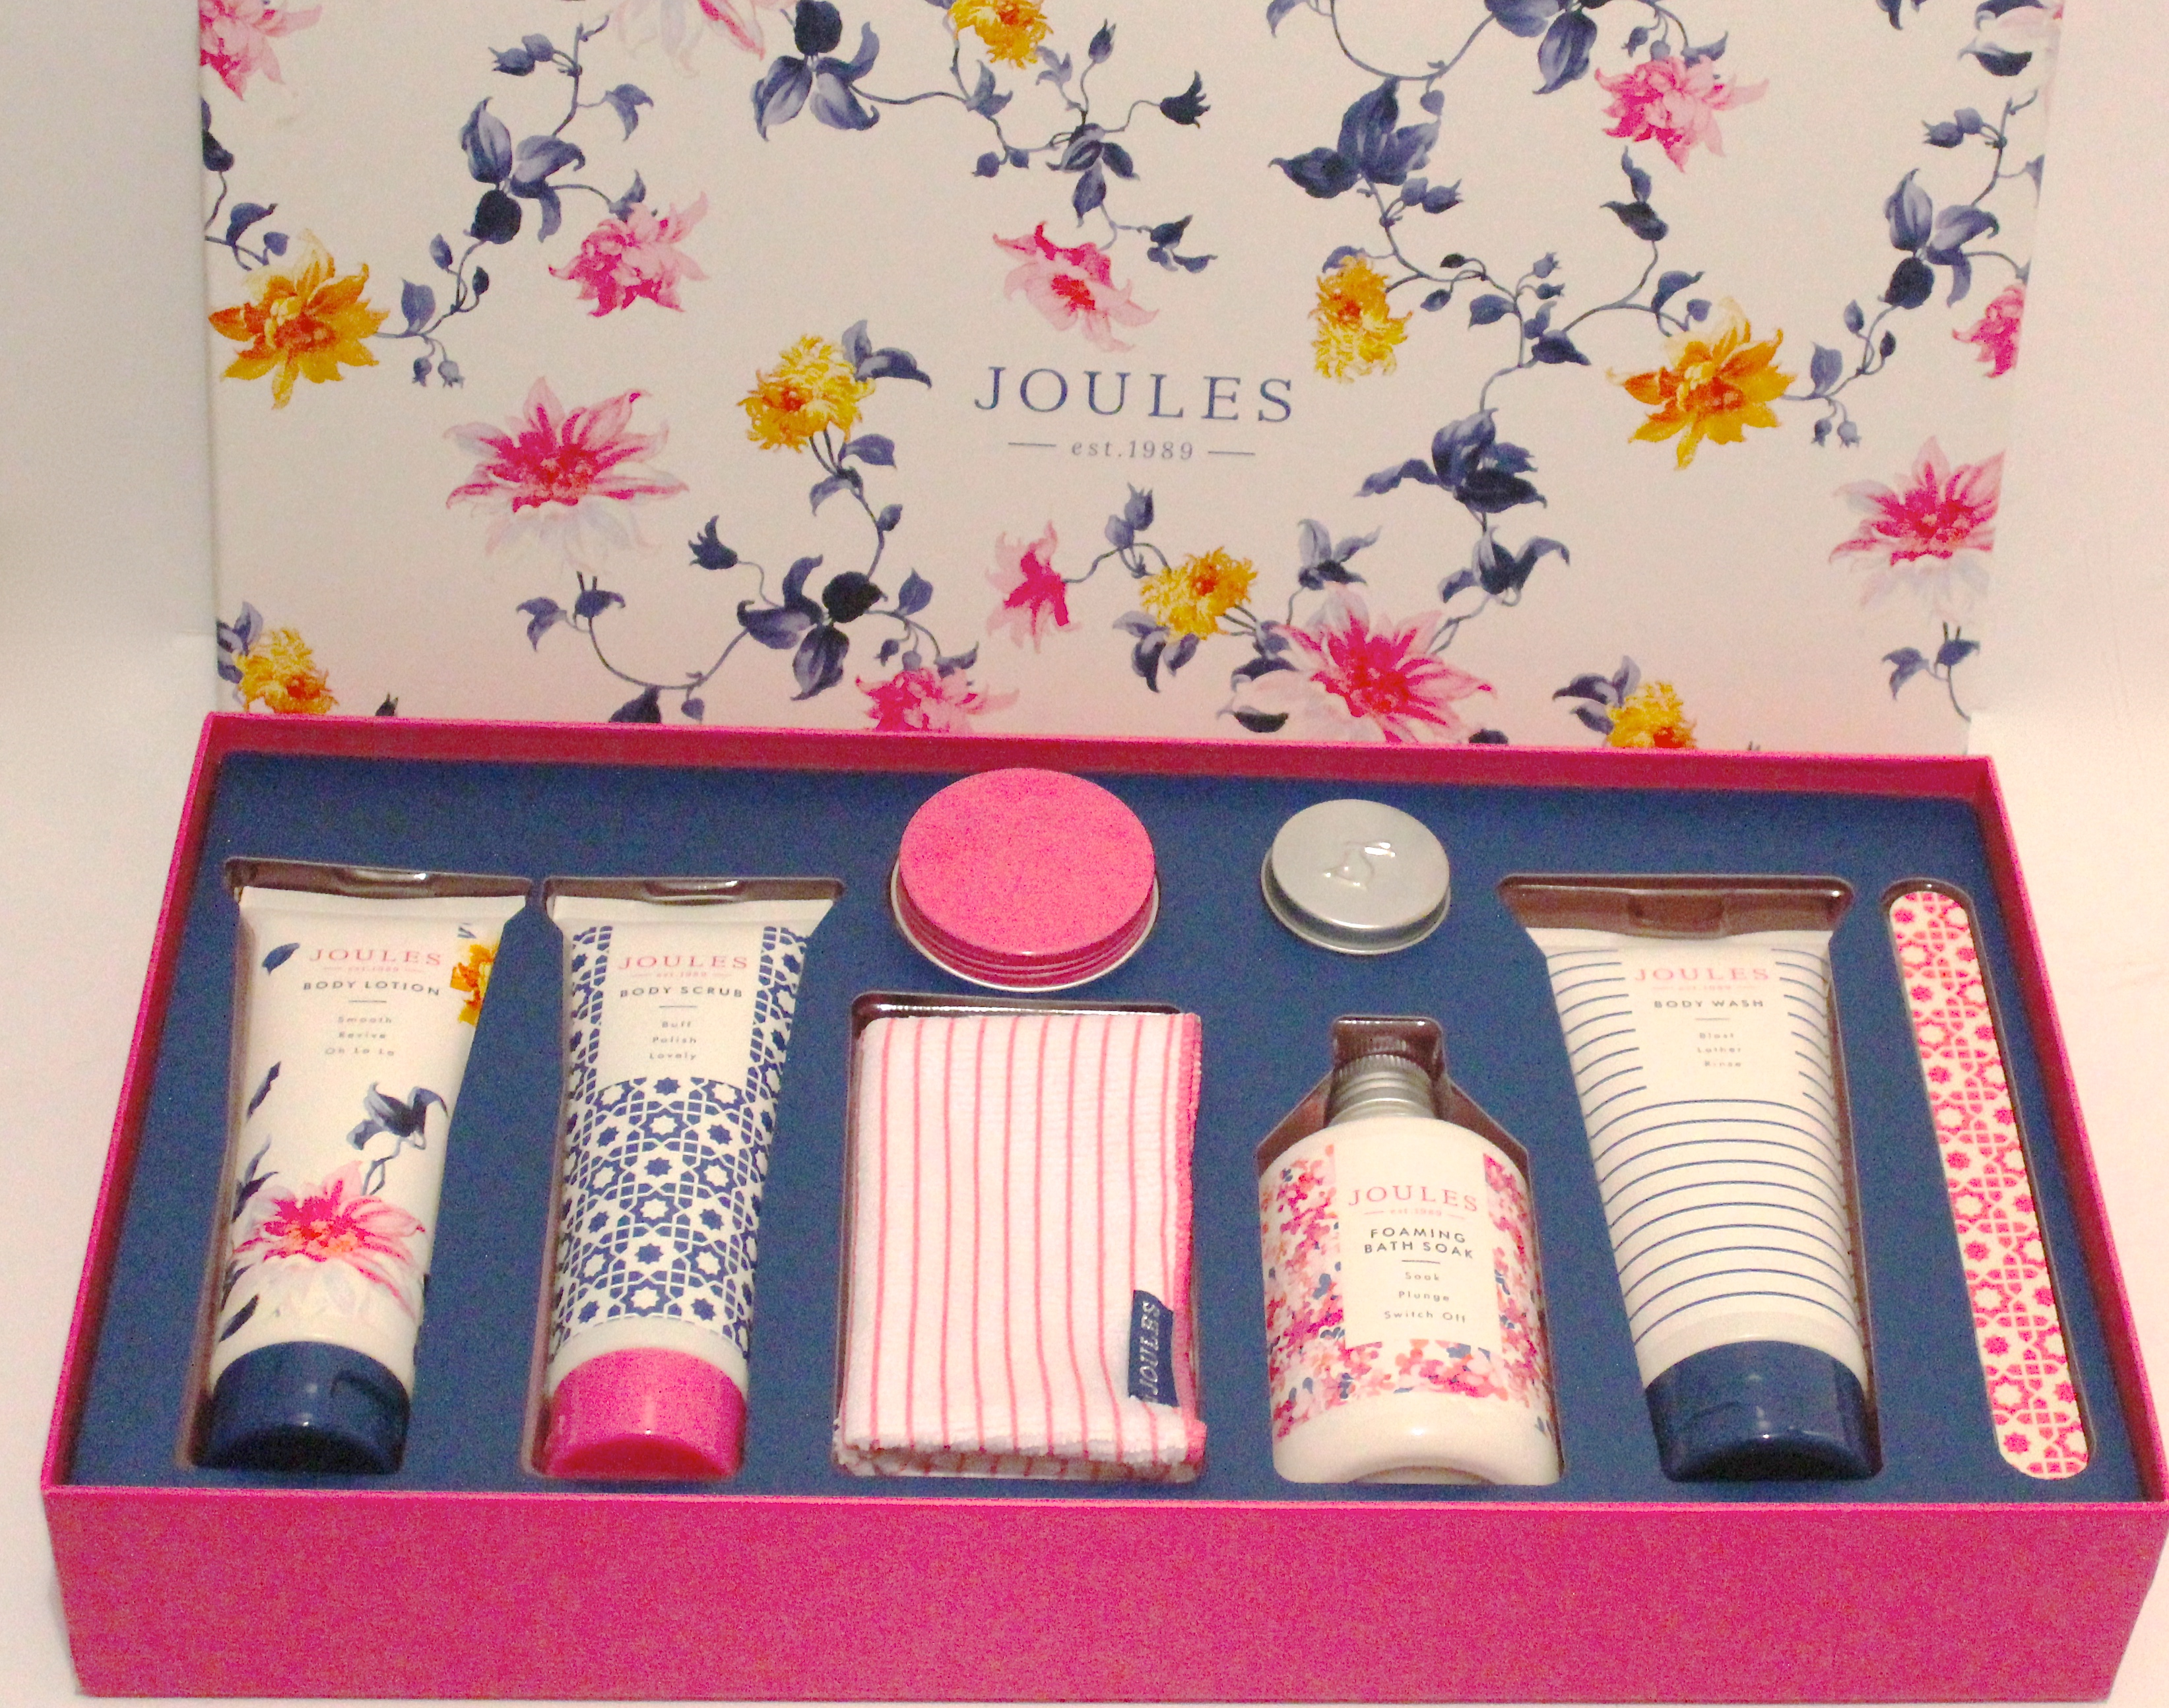 joules gift set